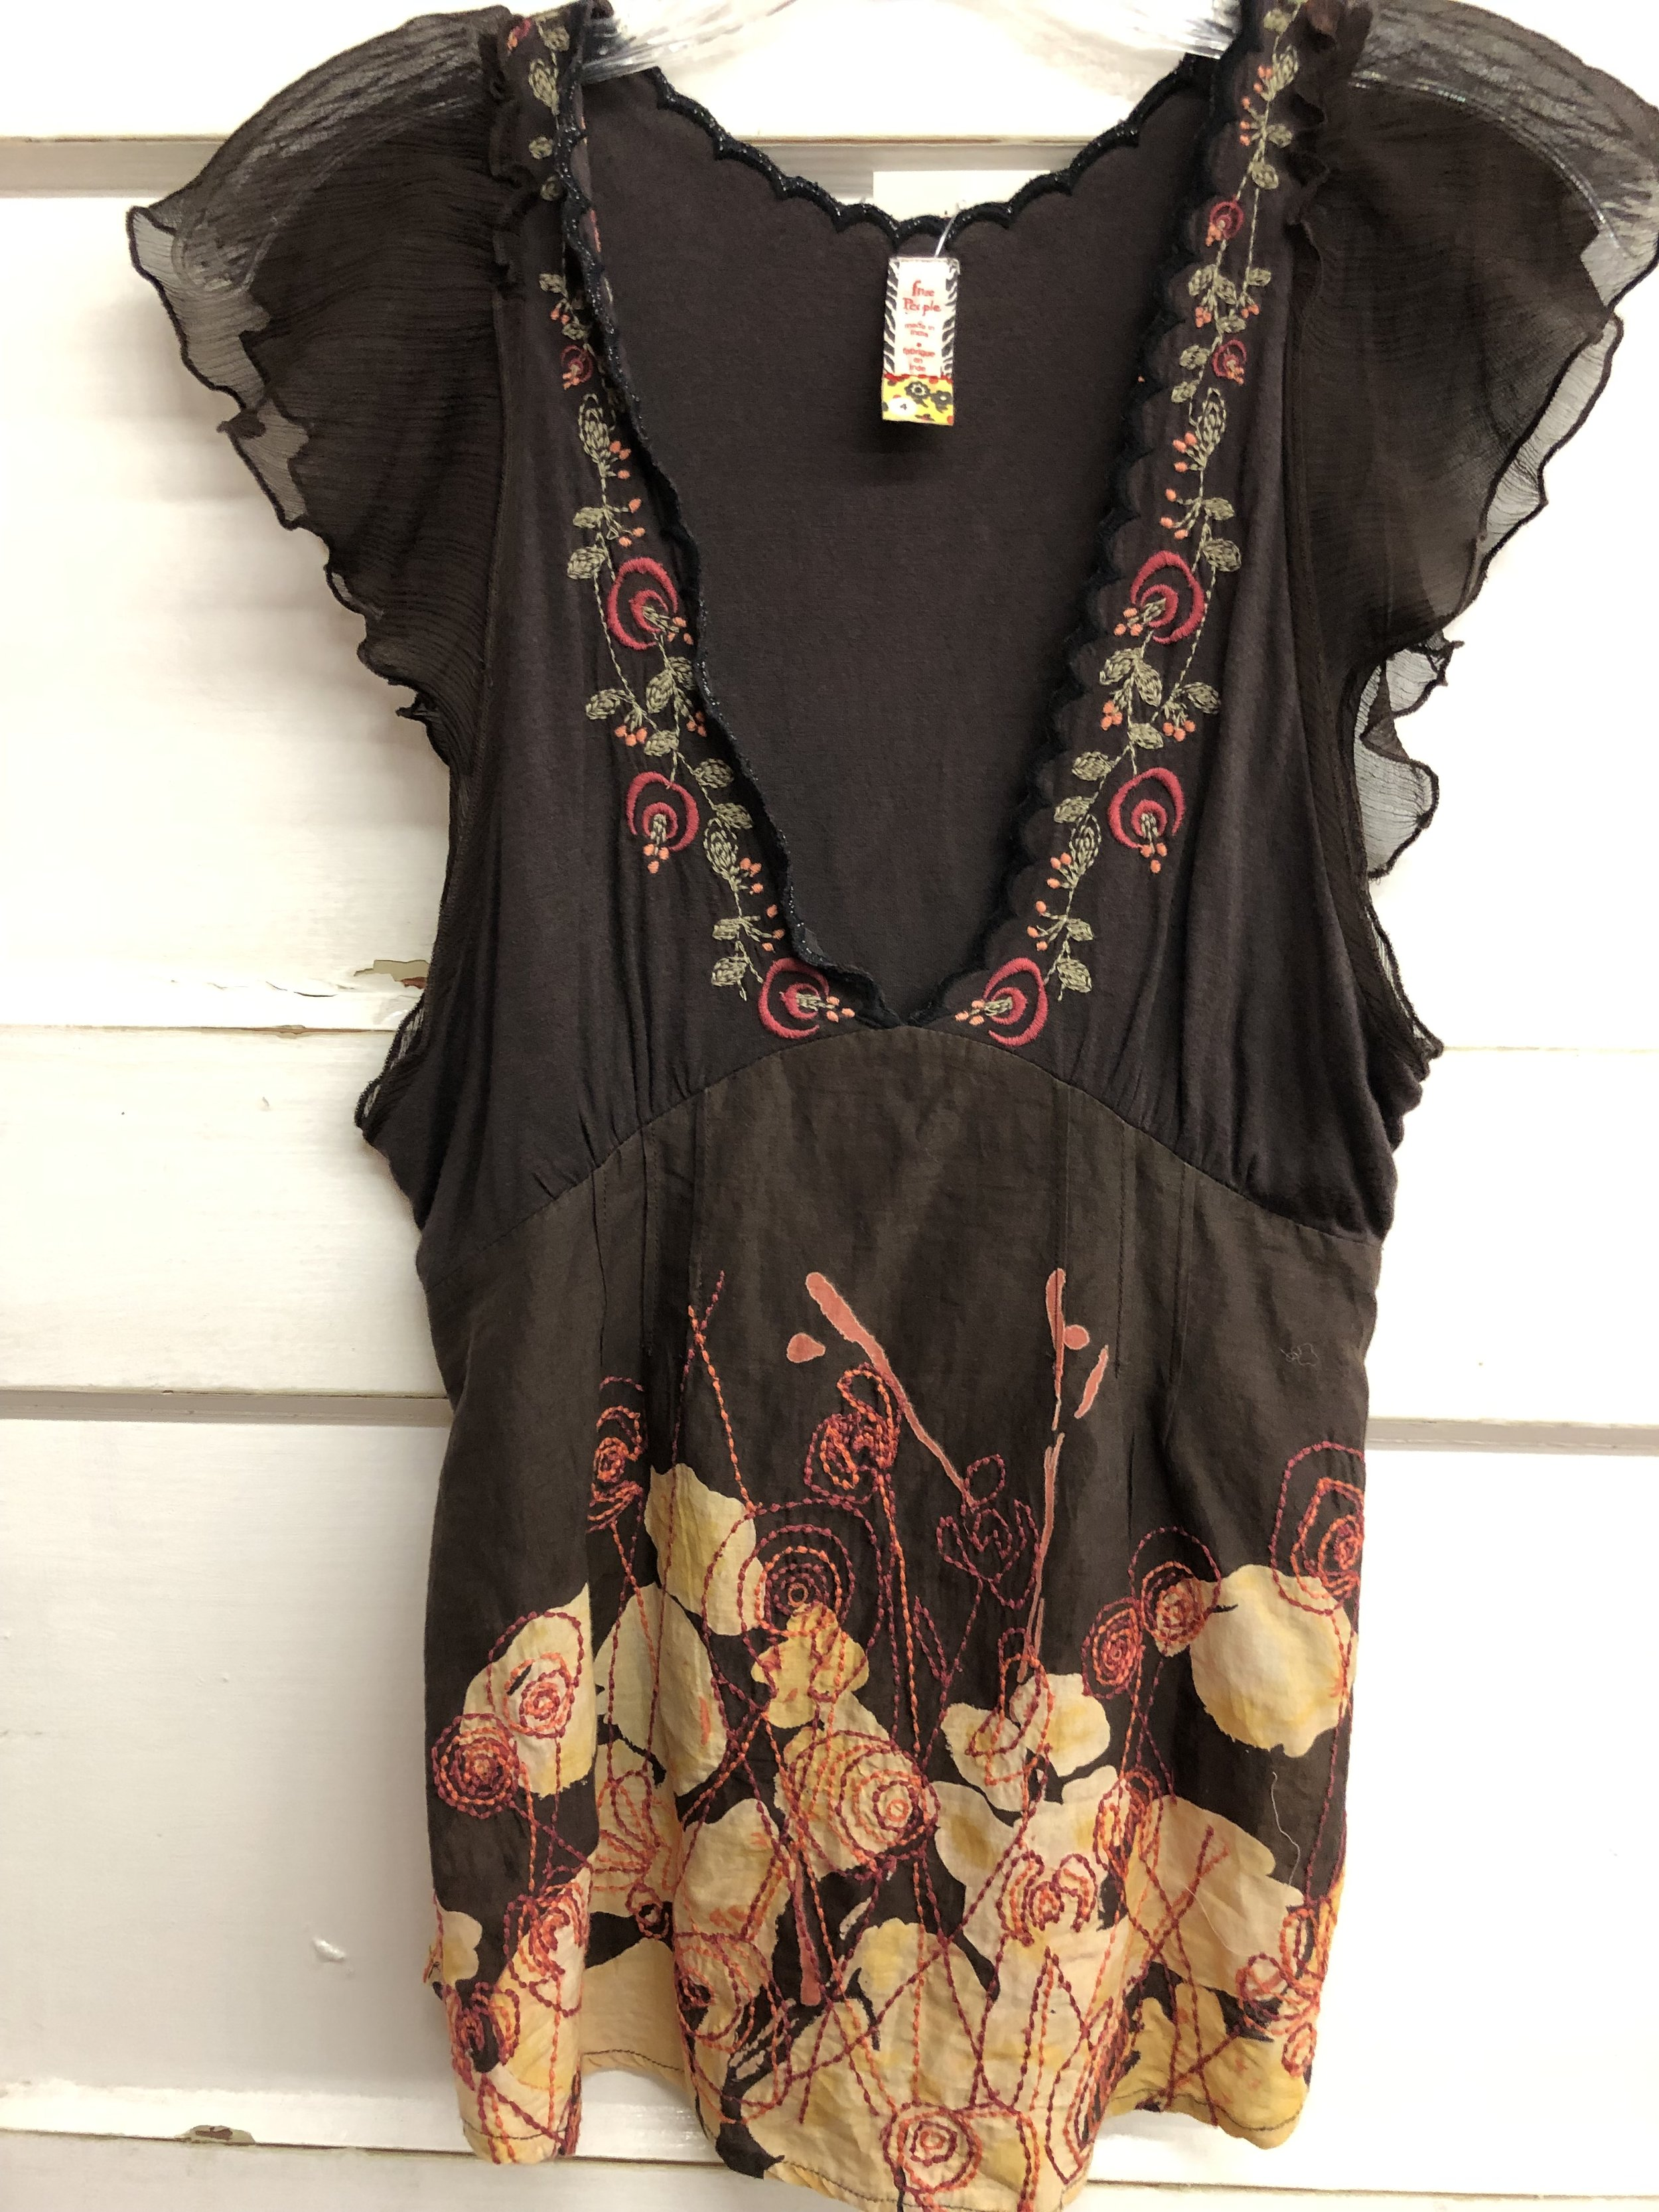 Free People Embroidered - 4 - $24.99